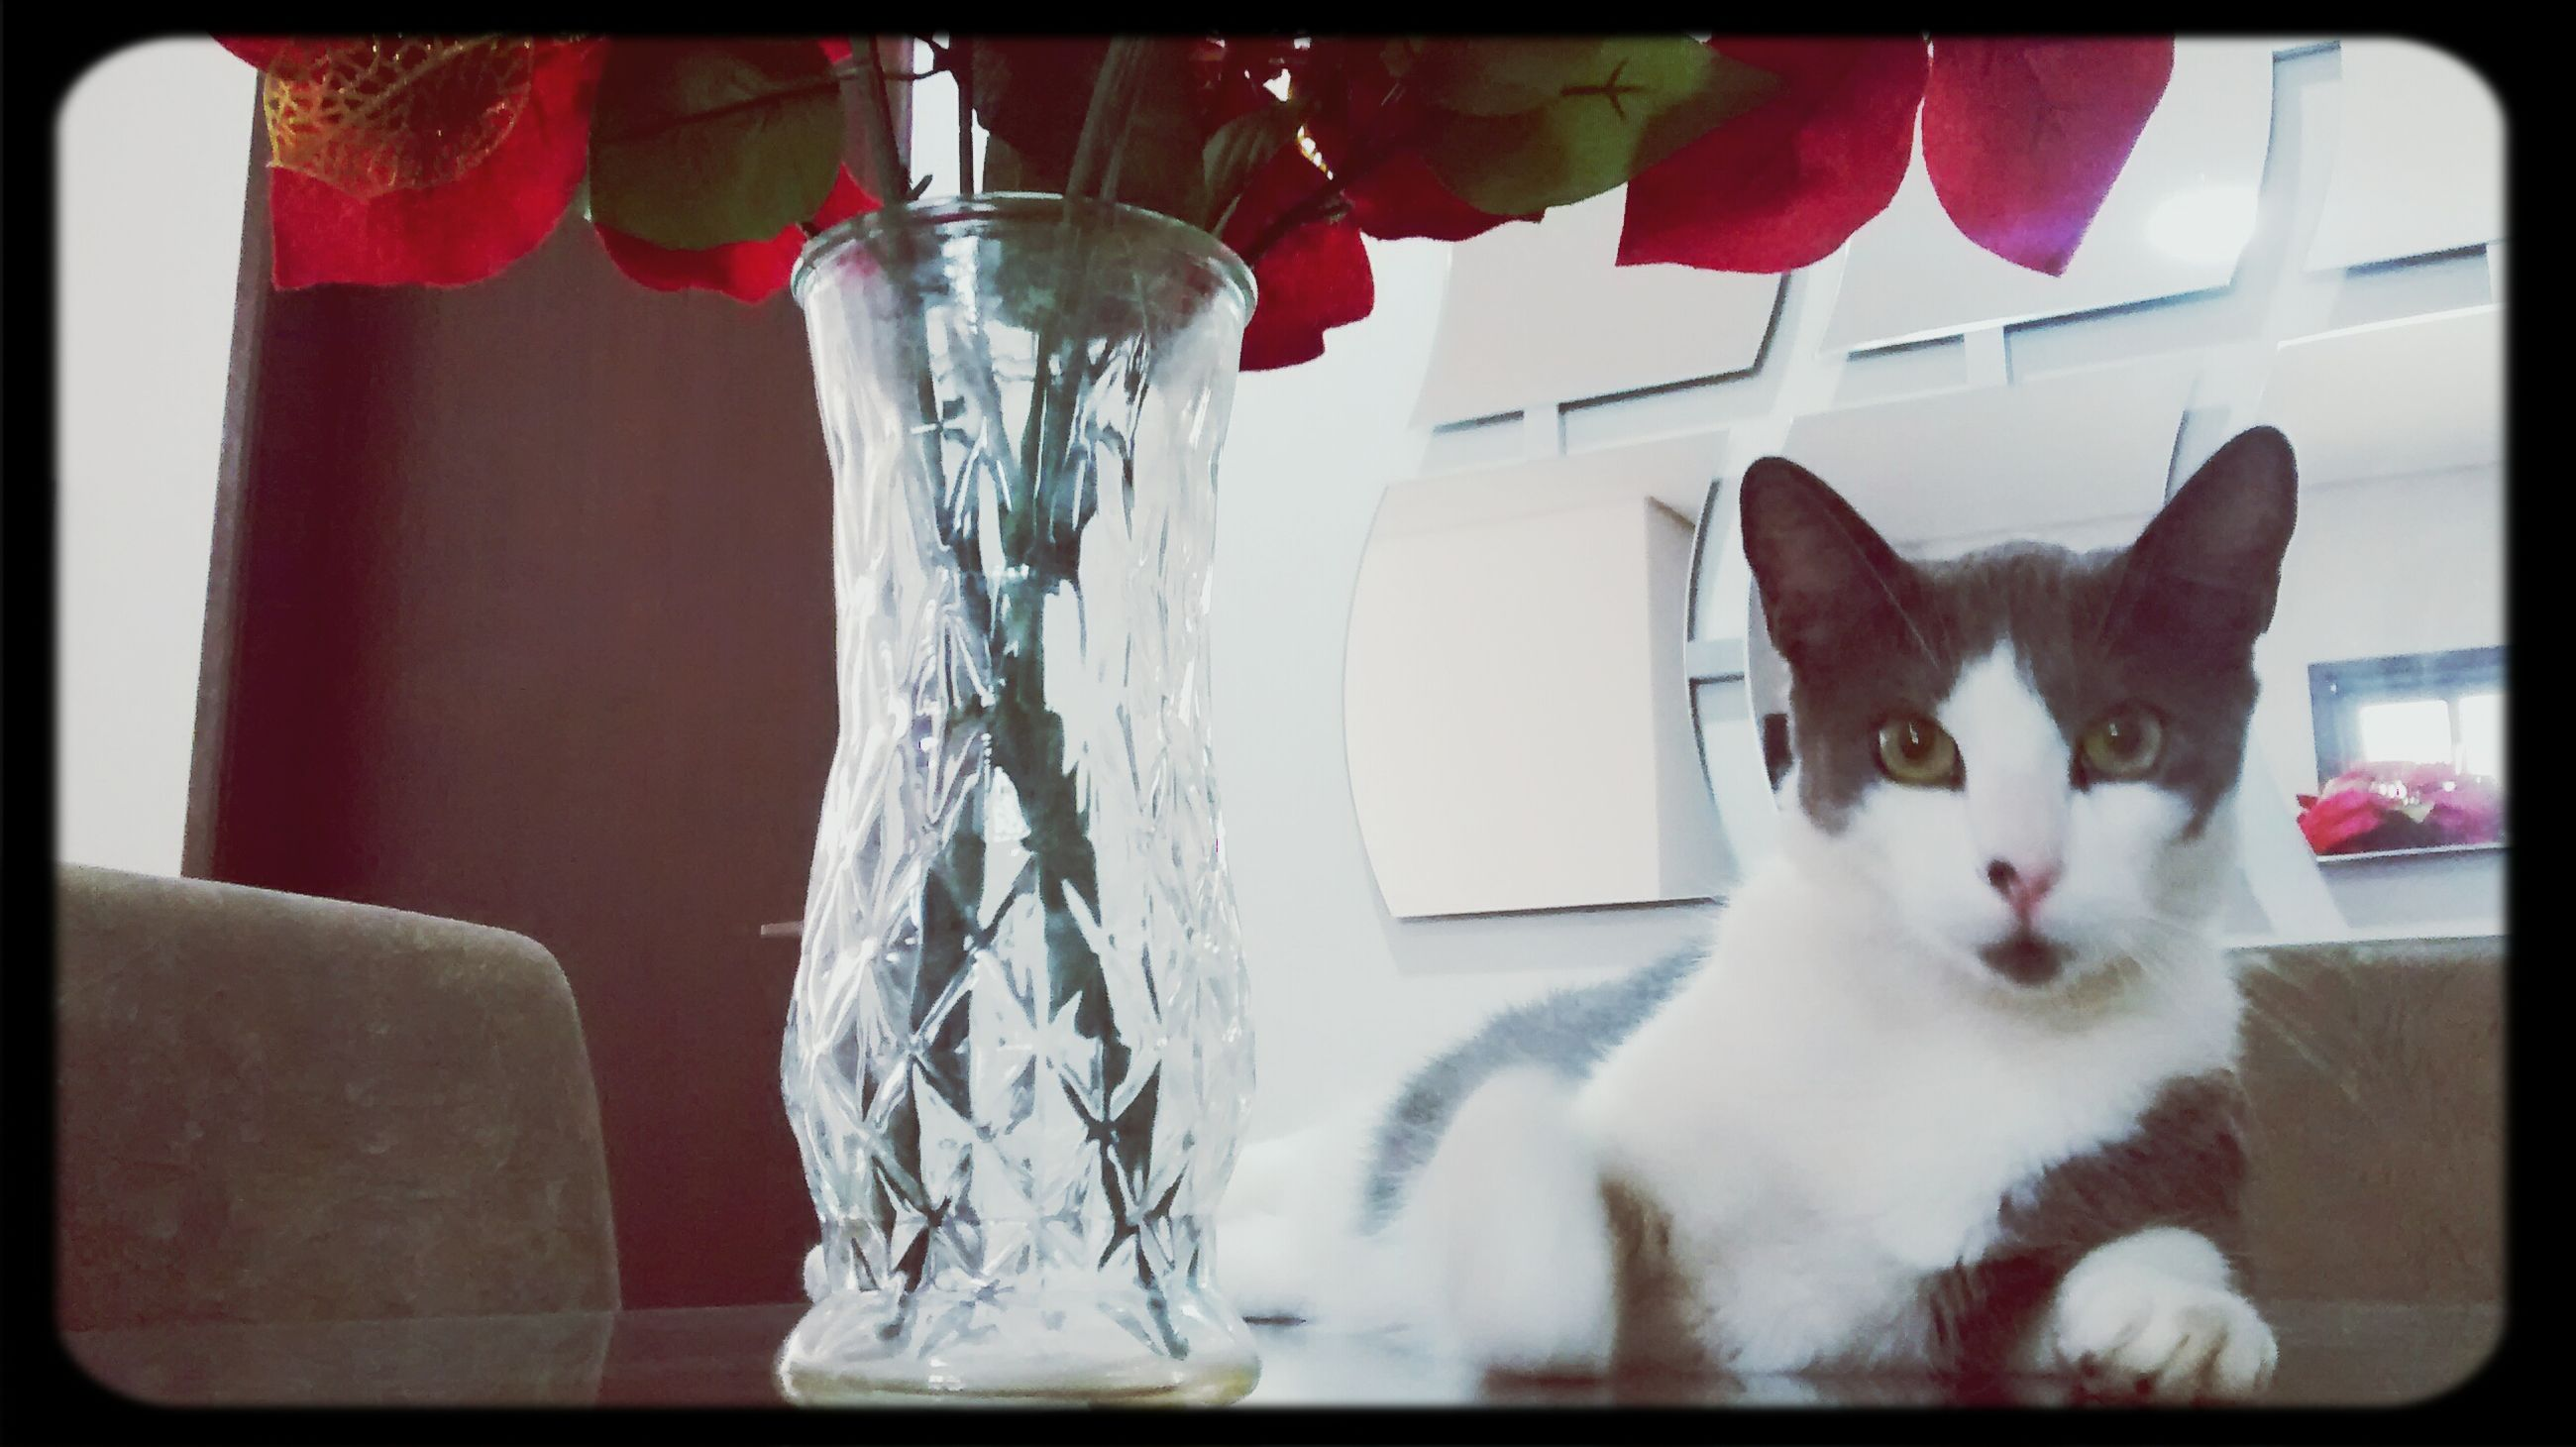 indoors, domestic animals, pets, domestic cat, transfer print, cat, animal themes, auto post production filter, home interior, table, mammal, one animal, feline, close-up, no people, glass - material, relaxation, home, chair, white color